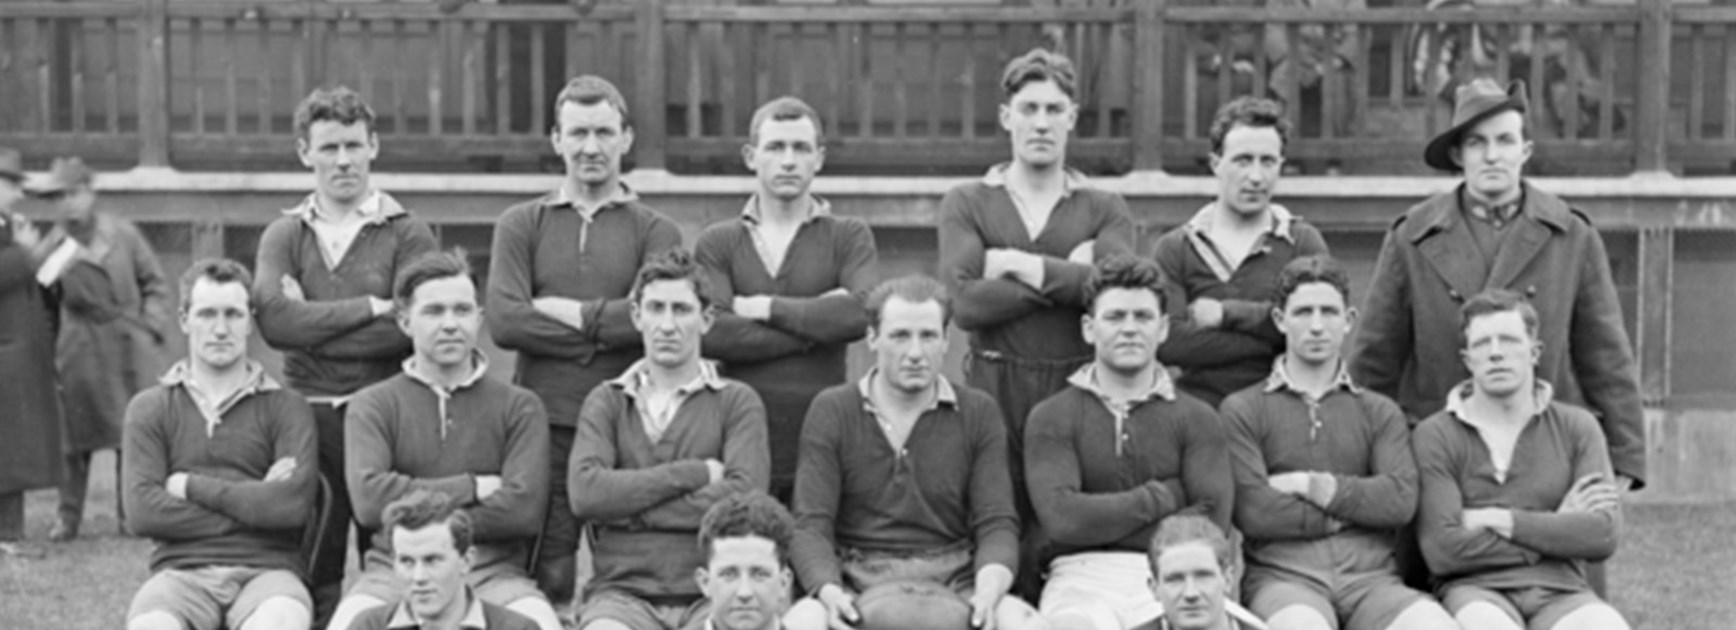 Stan Carpenter (back row; second from left) was captain of Newcastle in their first season in 1908.